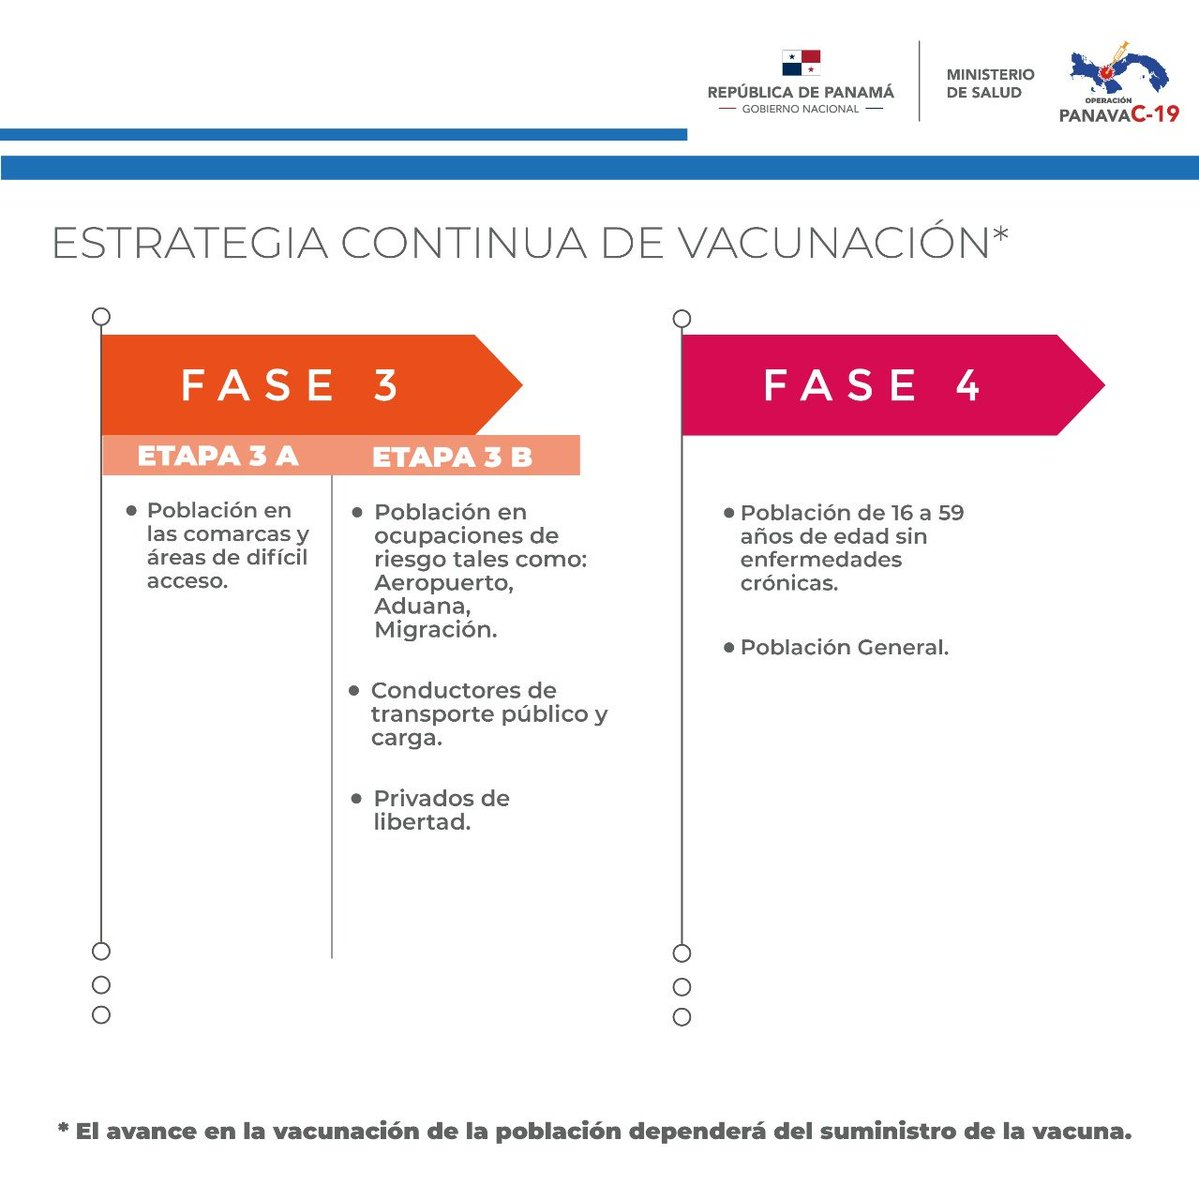 COVID-19 vaccines in Panama Phases 3 and 4